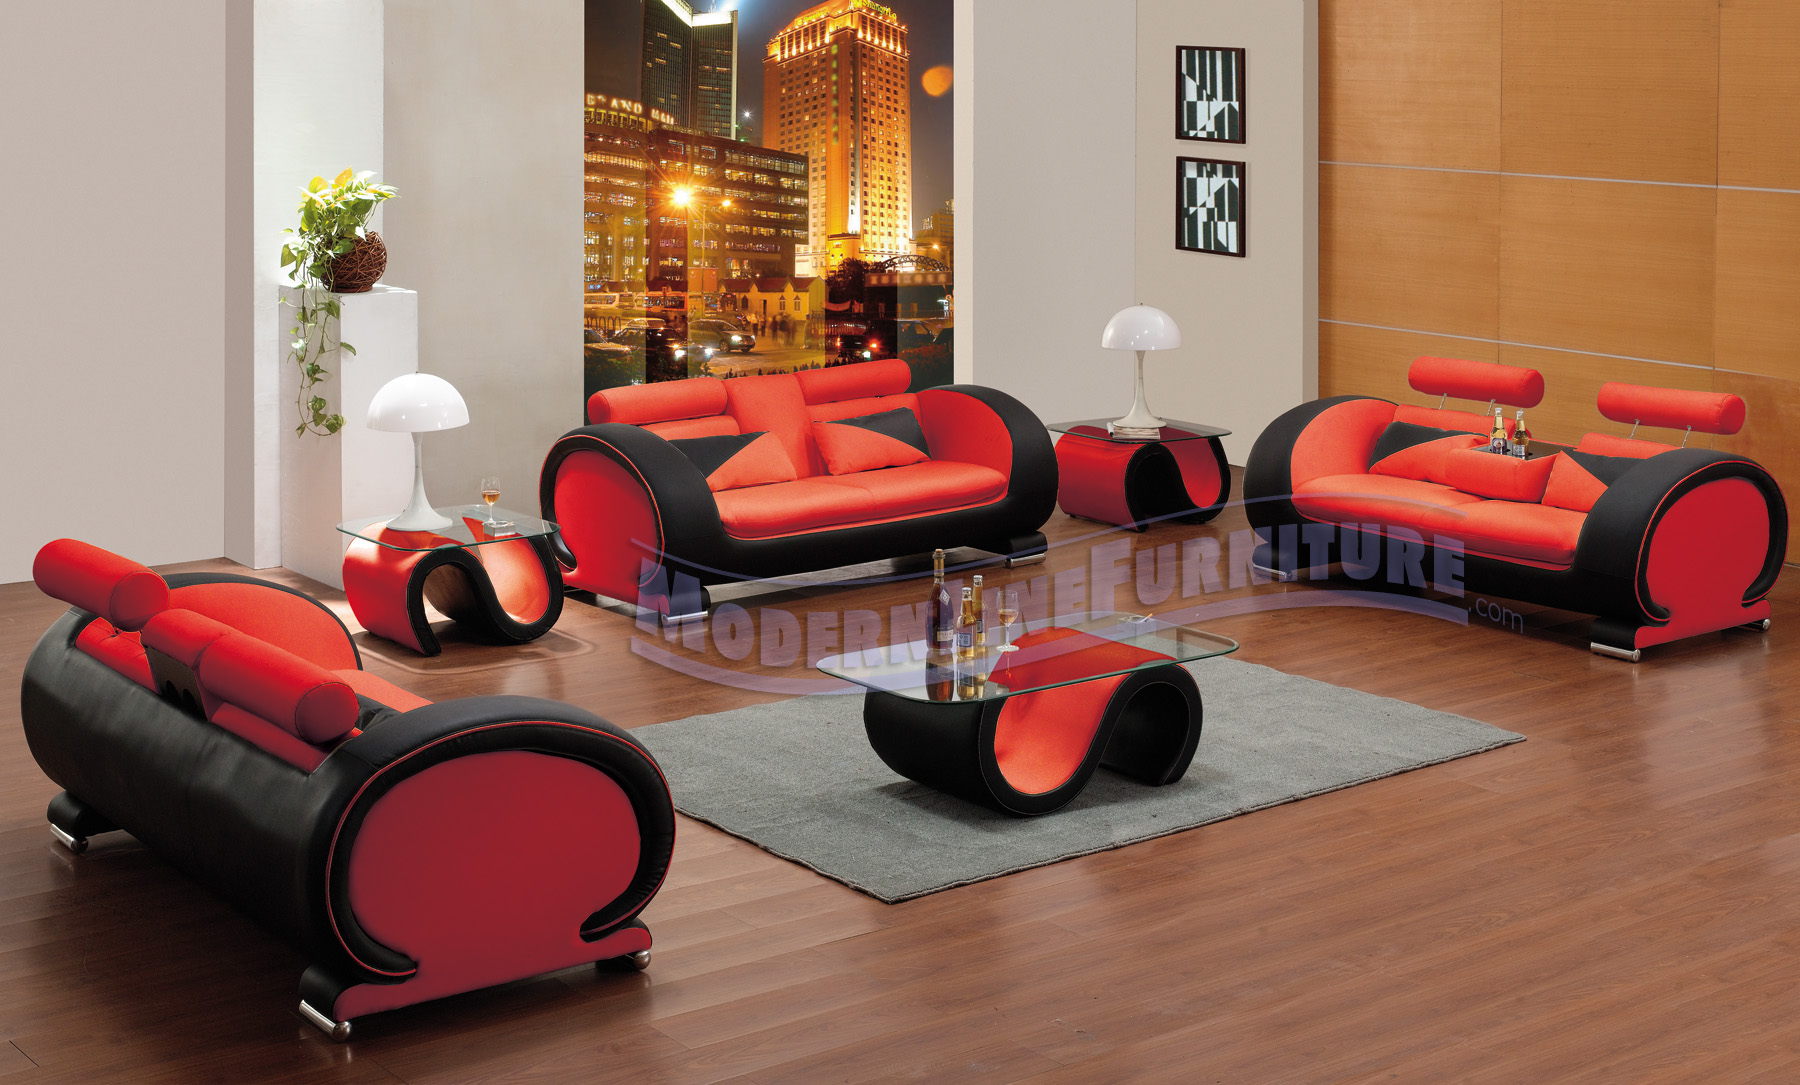 Great ... Made Furniture | Seating Collection | | | Contemporary Red U0026 Black  Leather Set Of Three Sofas With Matching Set Of 1 Coffee Table With 2 End  Tables